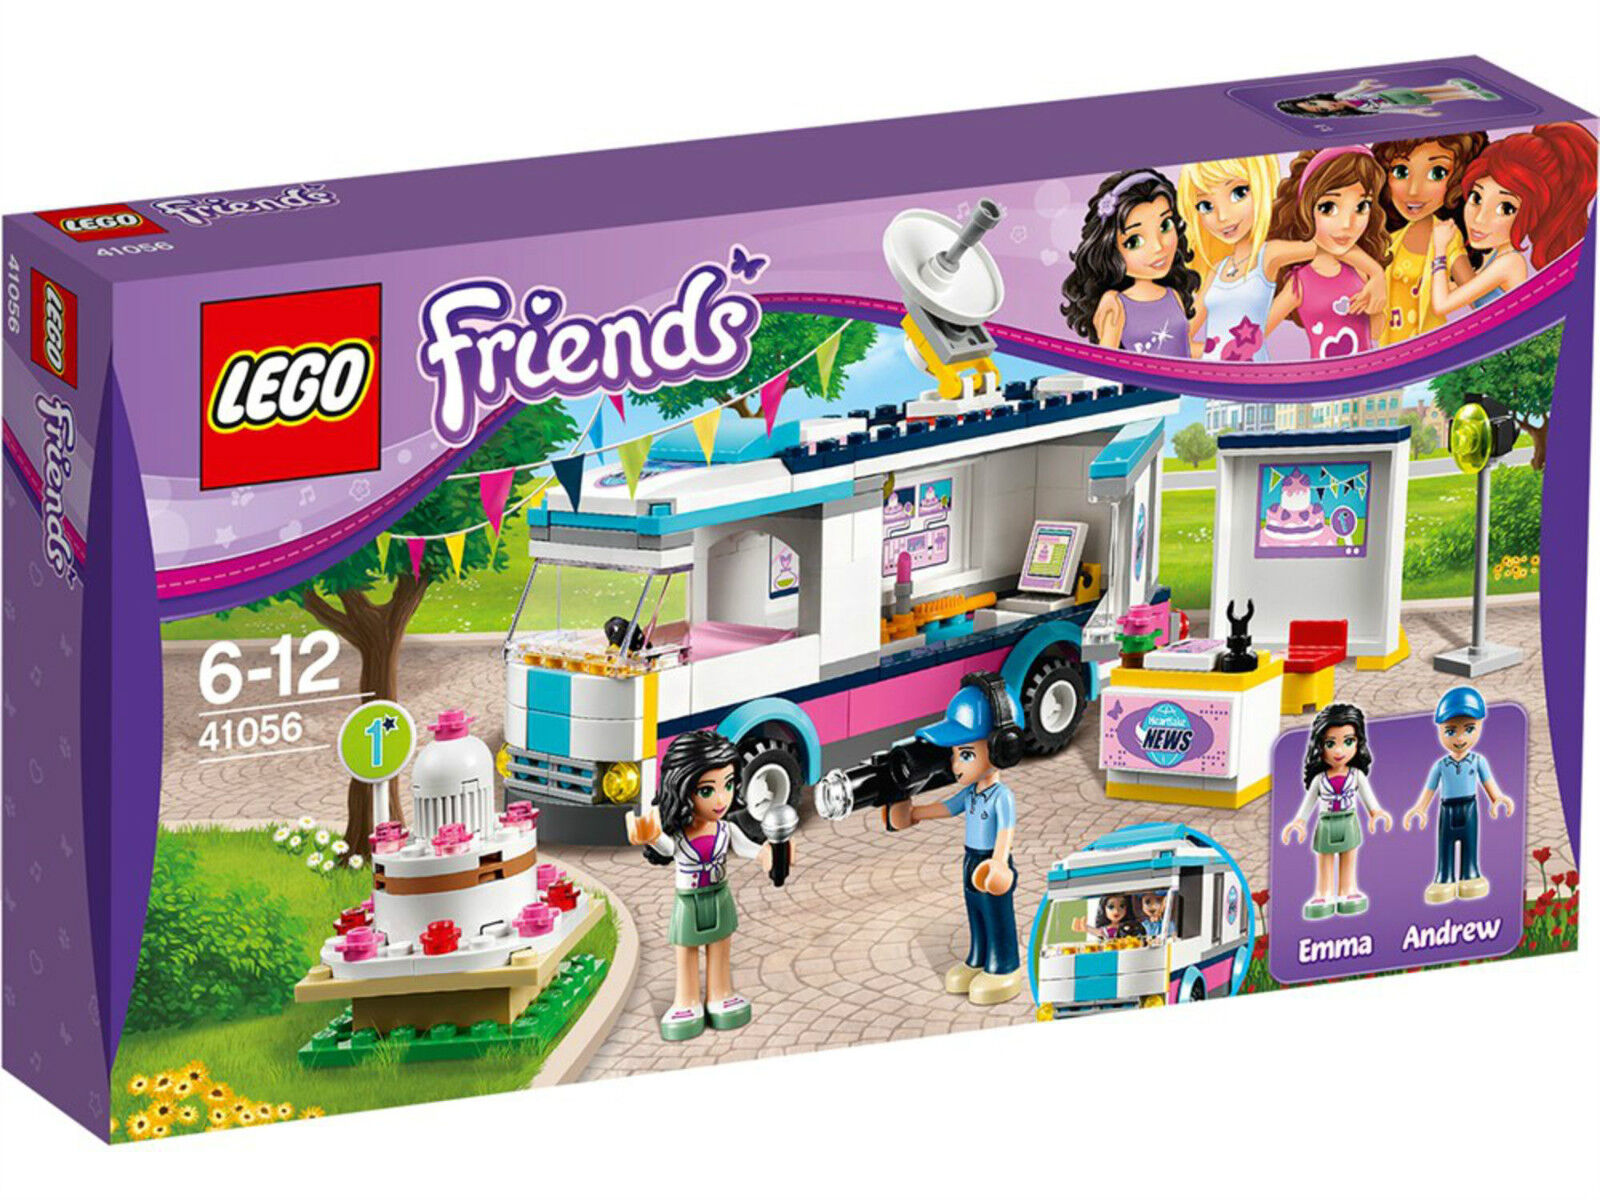 Lego Friends Heartlake News Van Bnib Inc Emma Andrew Mini Doll